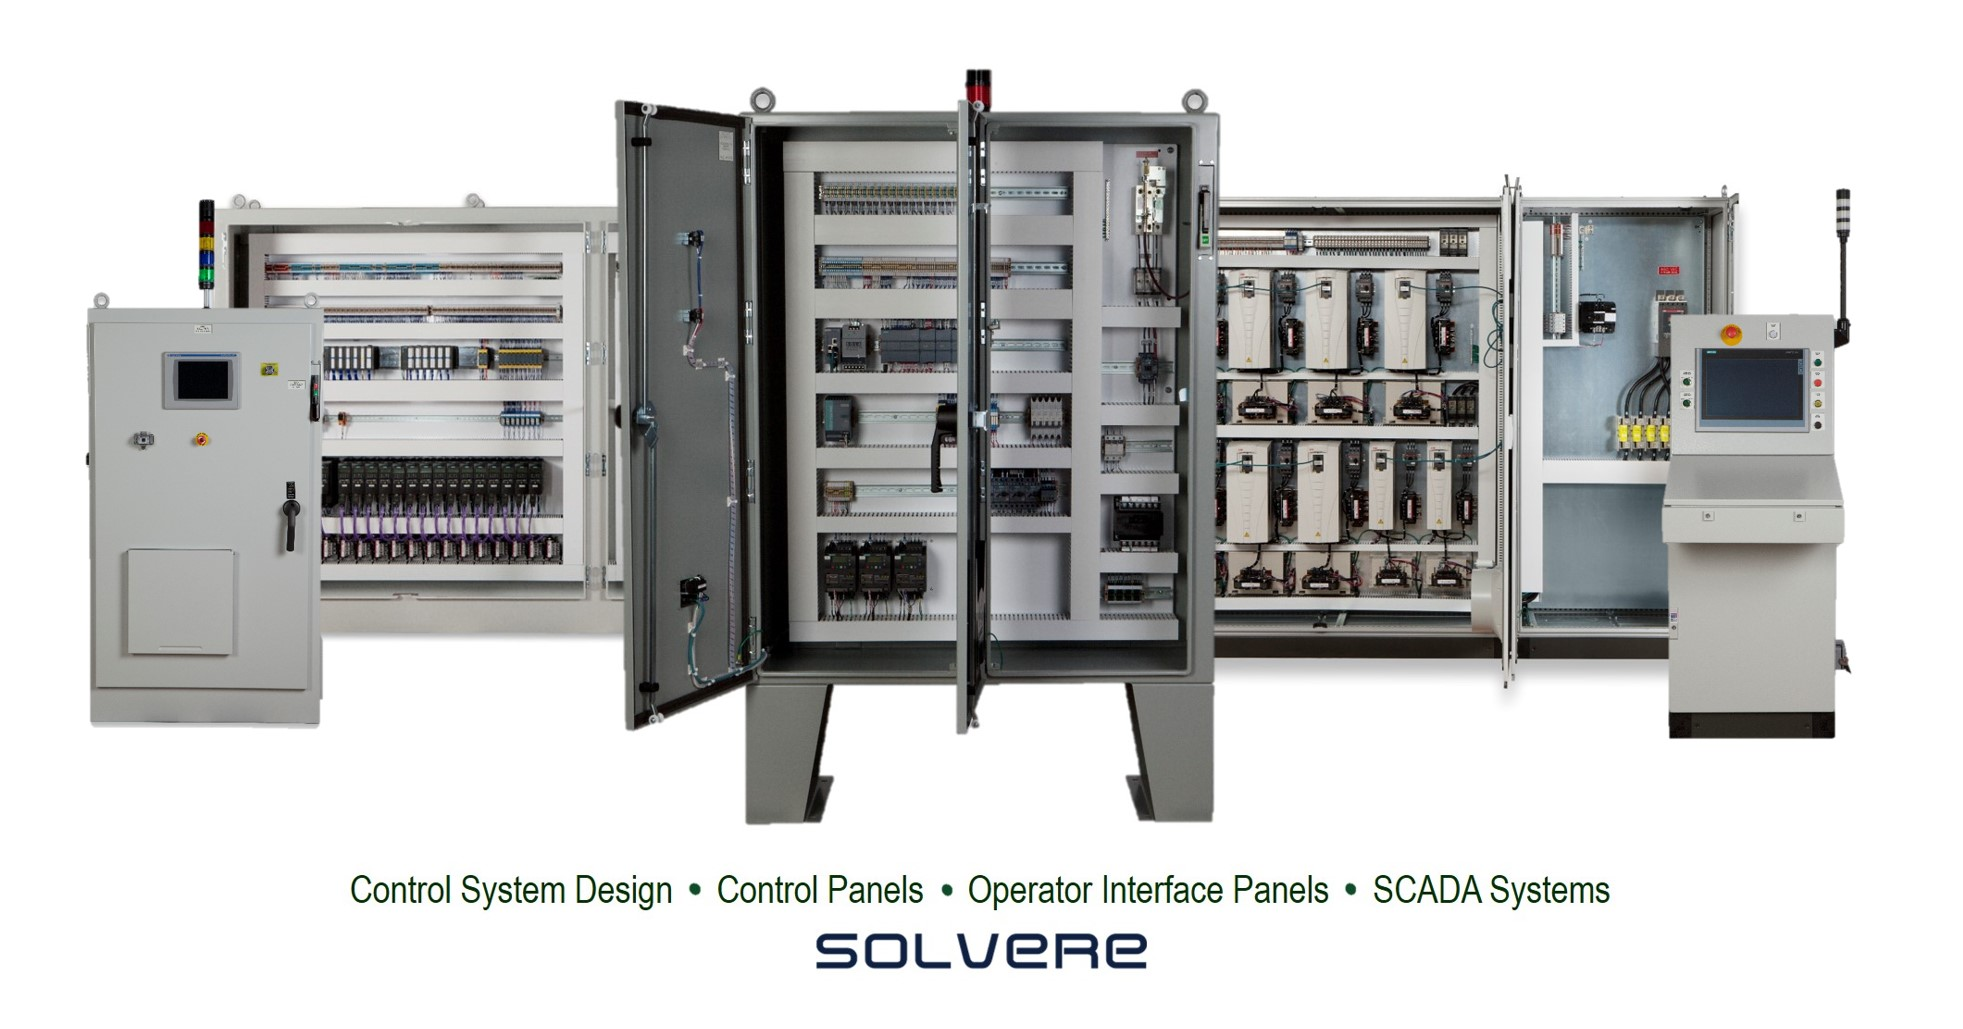 Control System Design, Control Panels, Operator Interface, SCADA Systems